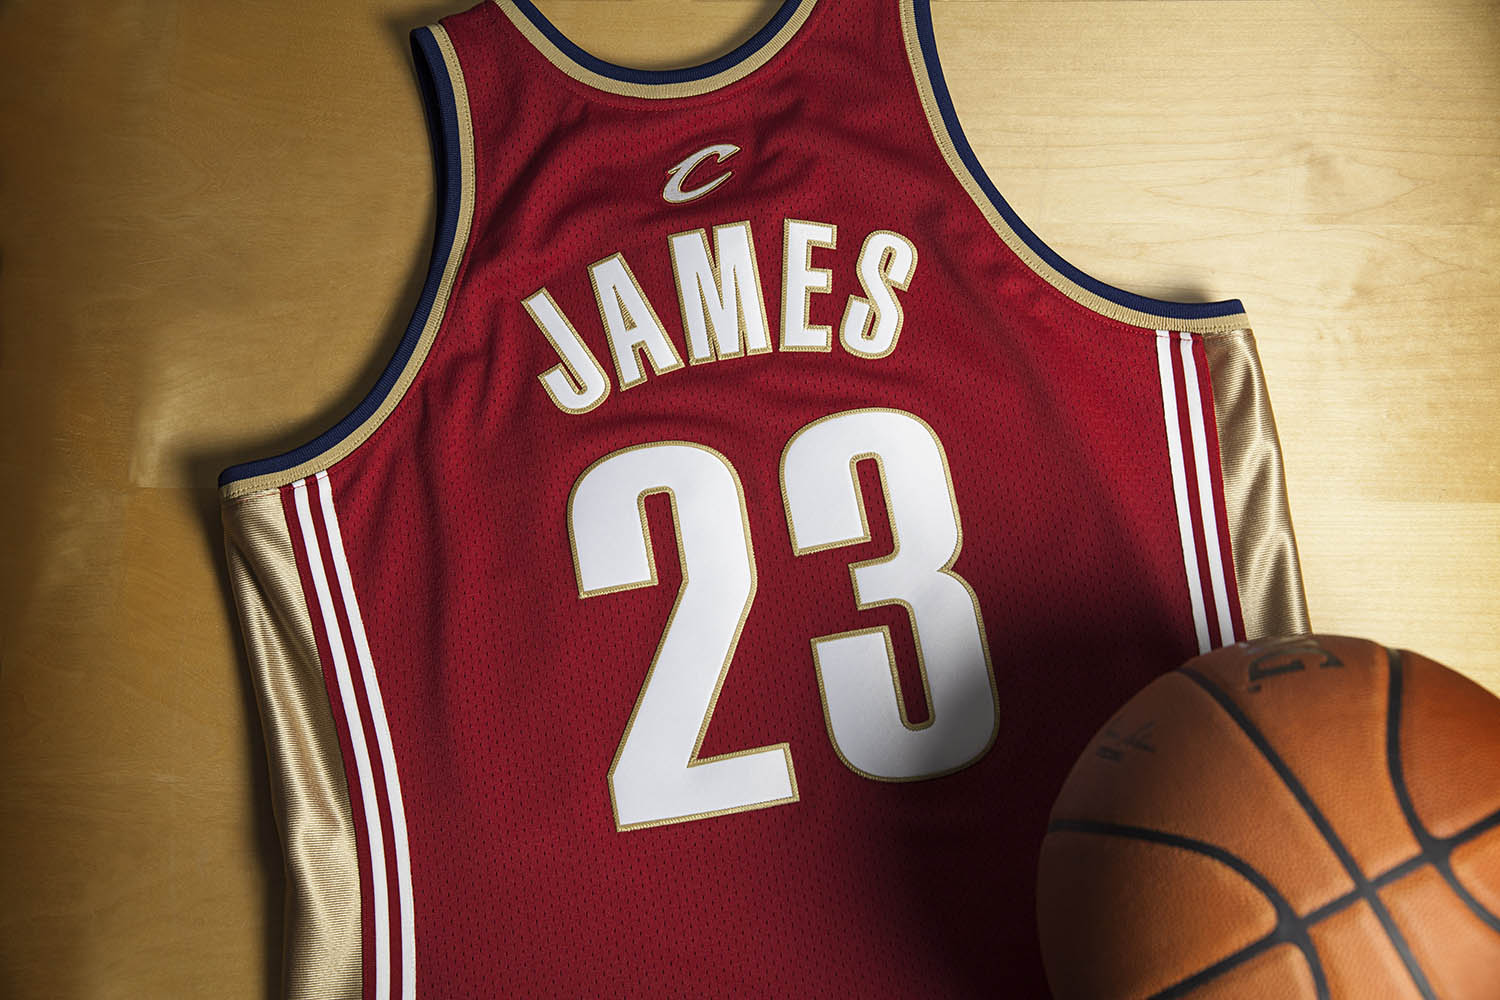 Mitchell & Ness LeBron James Rookie Jersey Number